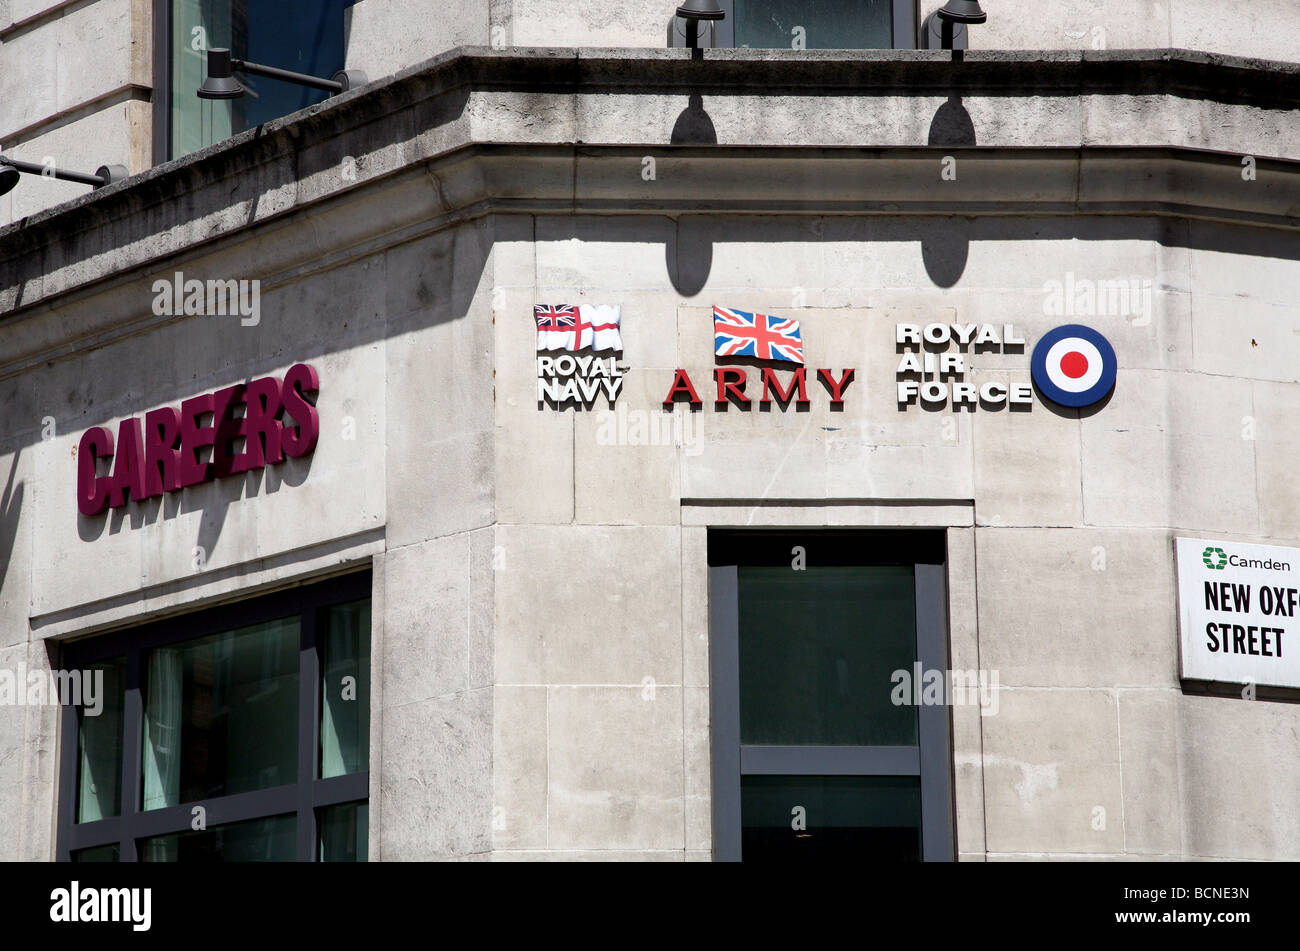 Armed forces careers office in central London - Stock Image